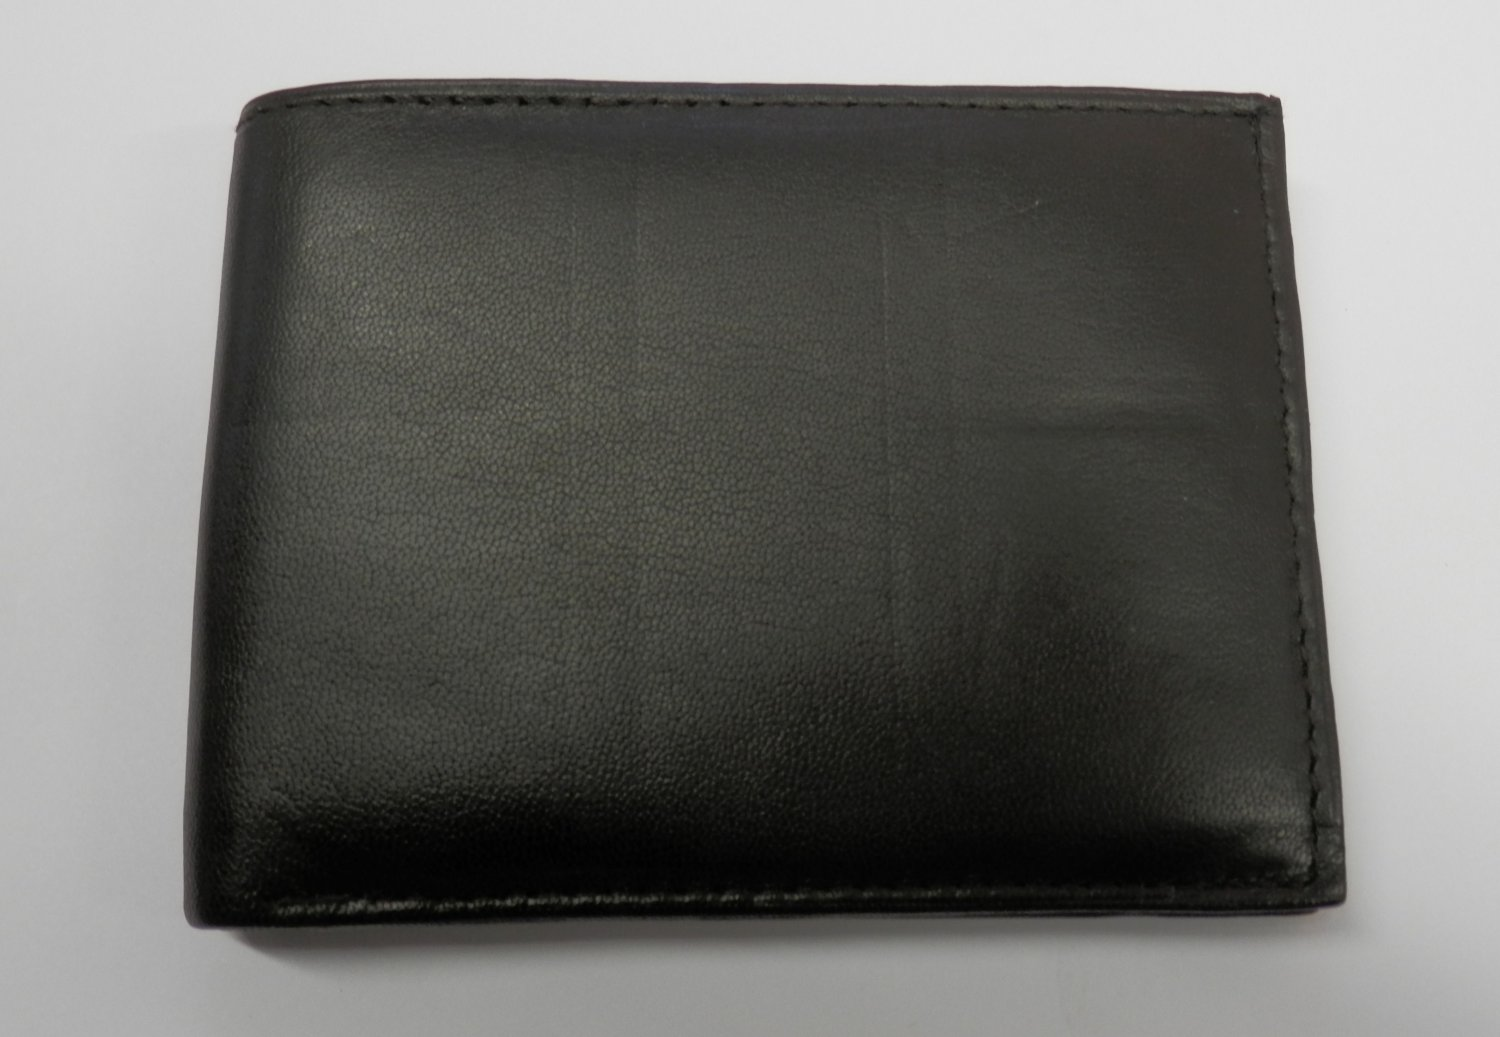 Genuine Leather Men's Bifold Wallet- #60 DK. BROWN